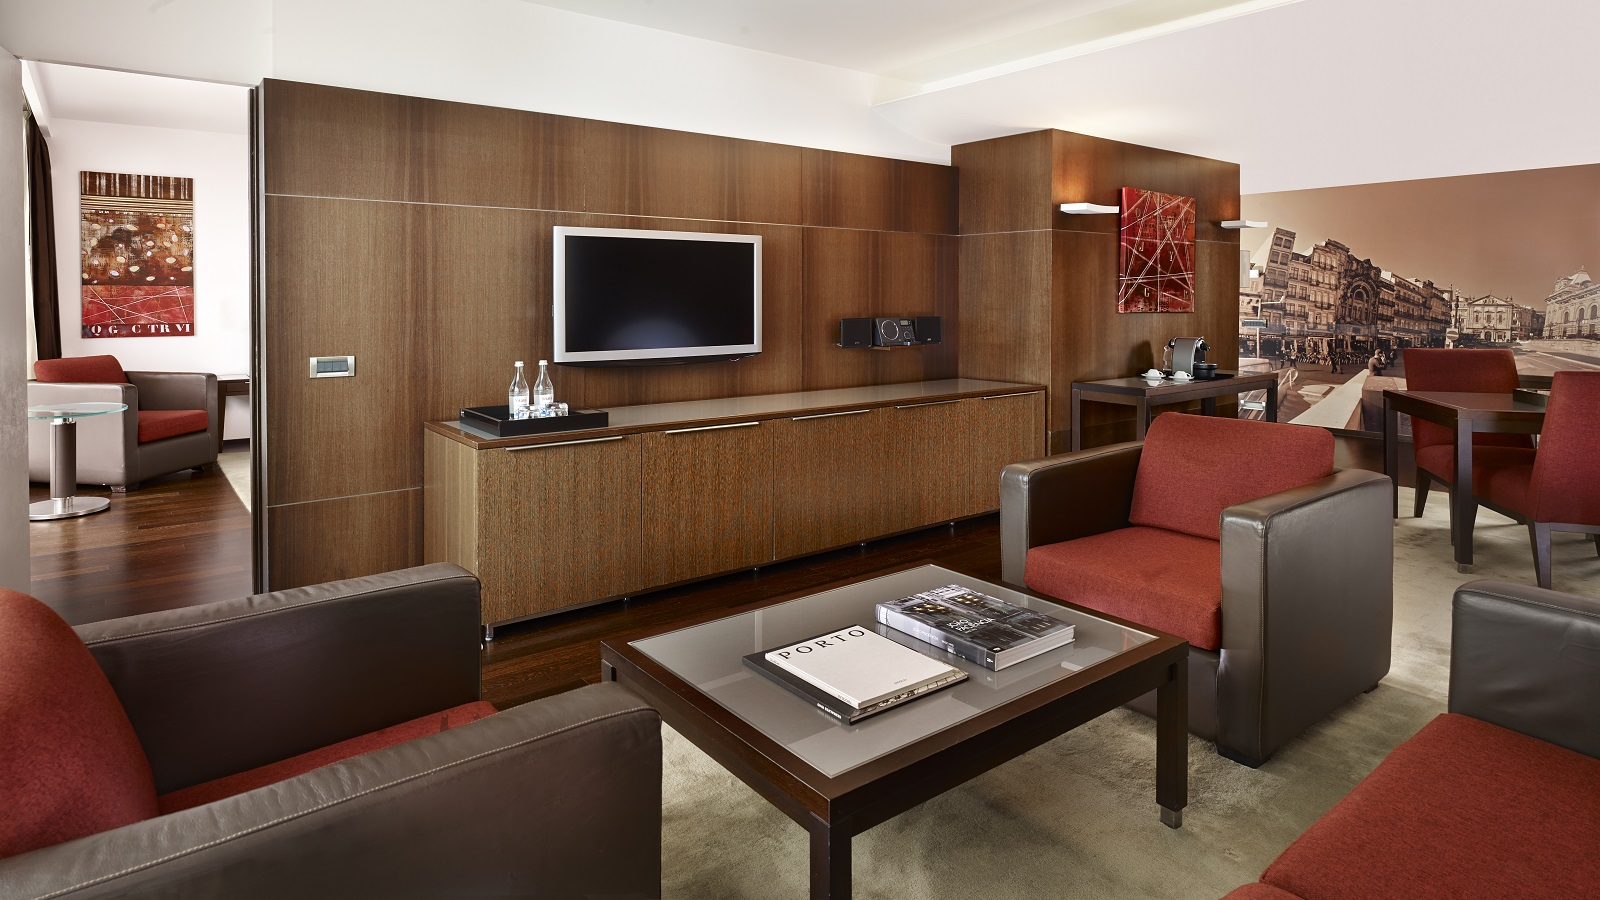 Executive Suite - including wi-fi, breakfast and parking